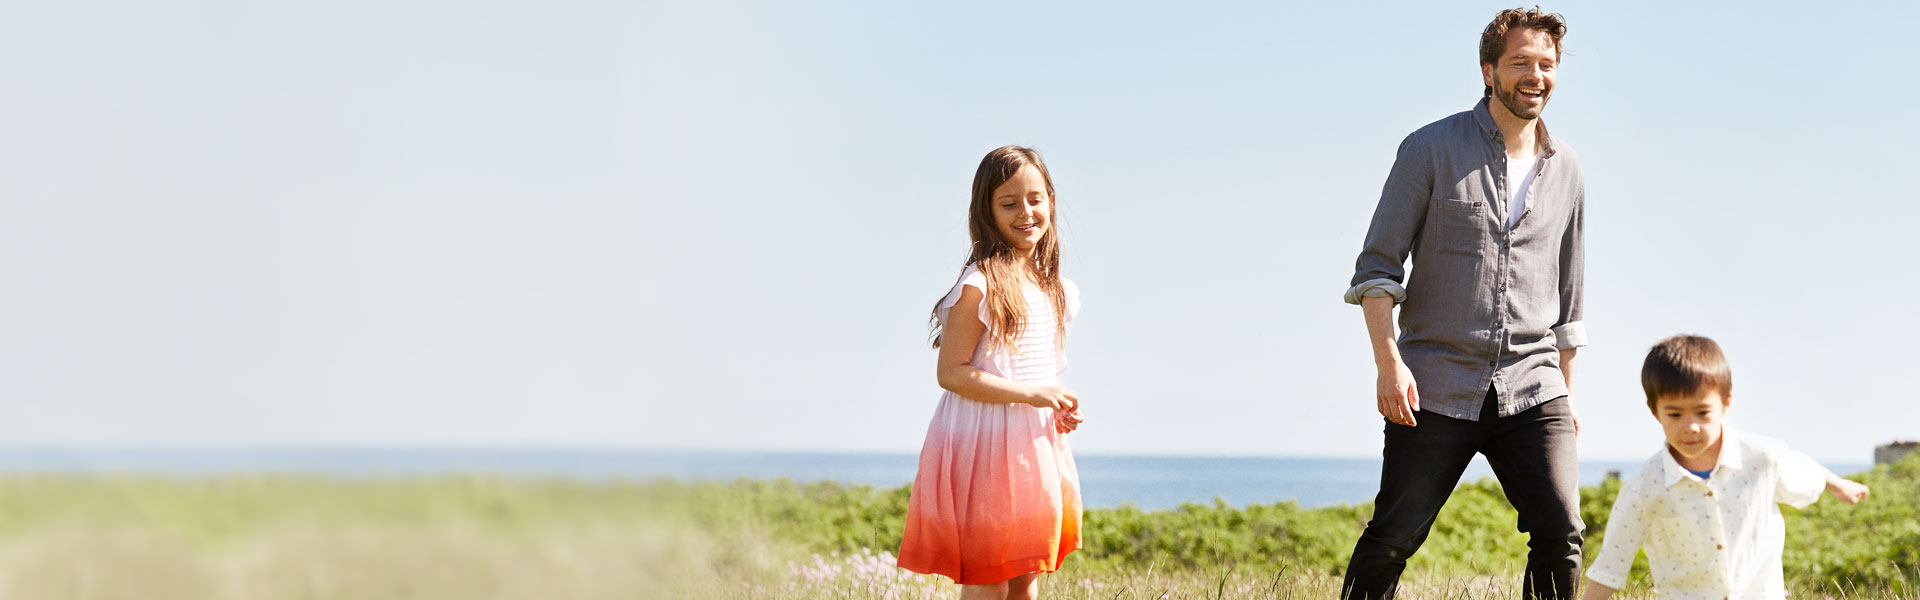 Implant solutions for children and adults